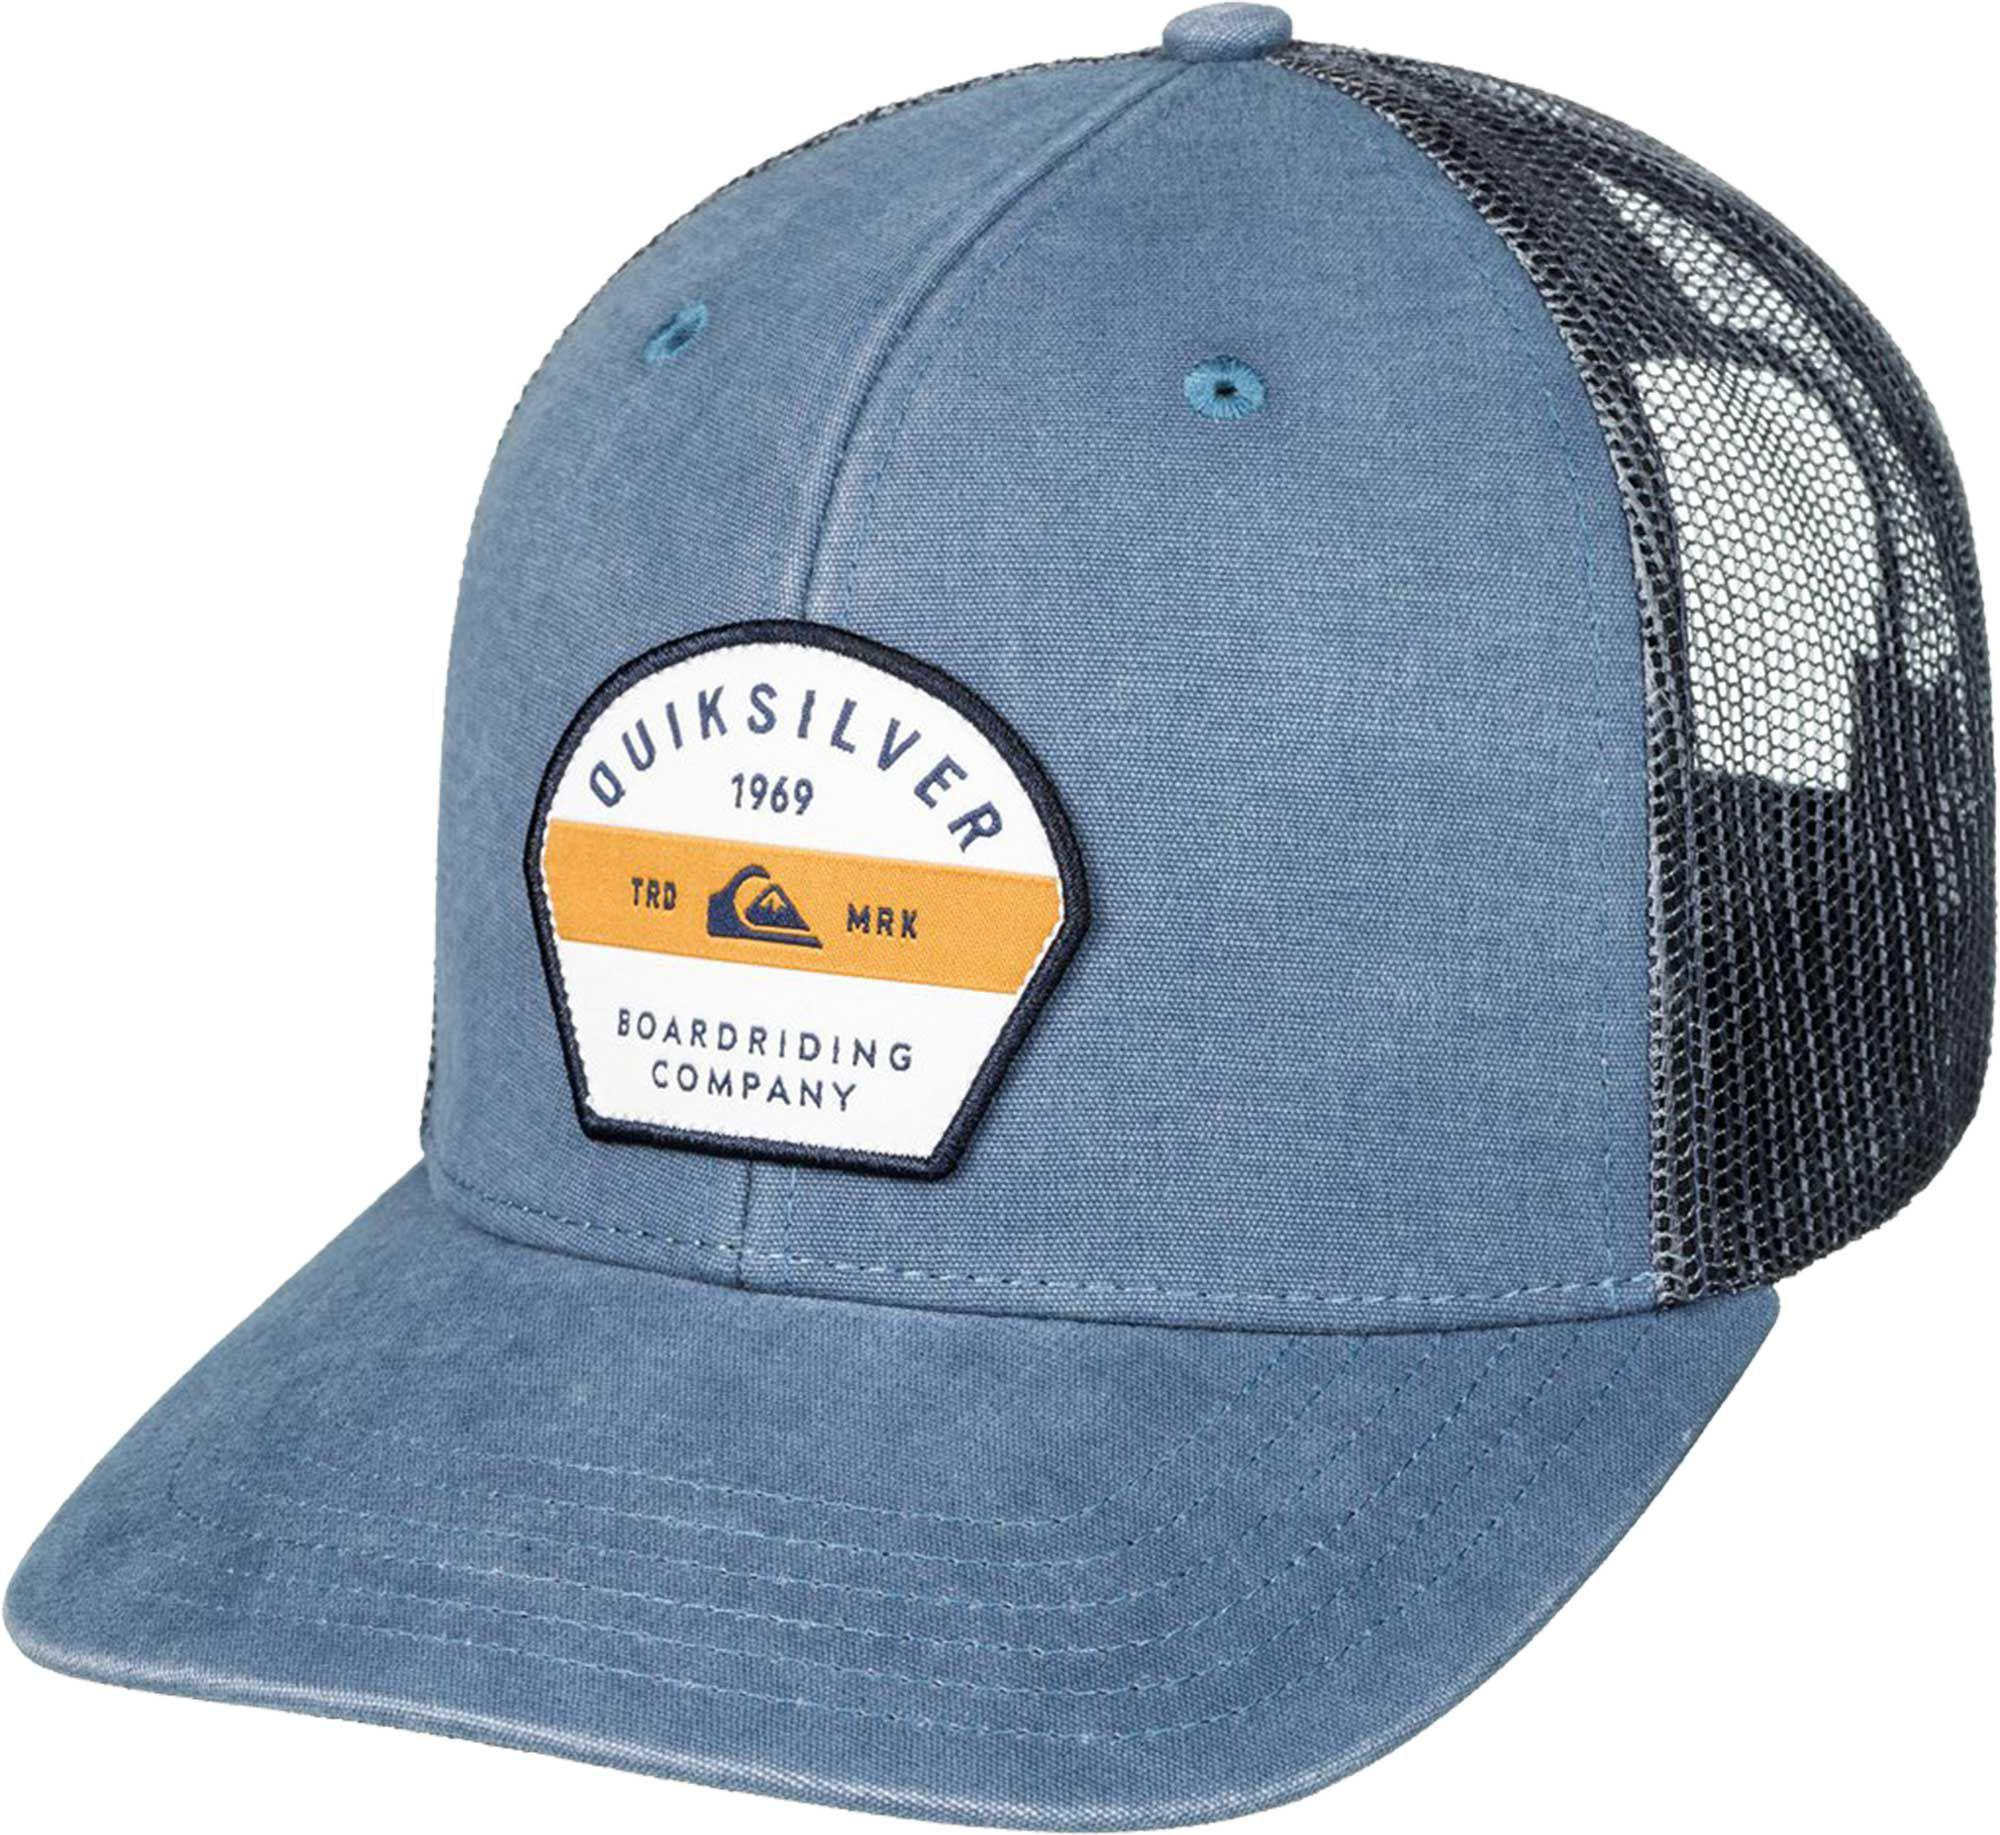 Lyst - Quiksilver Quicksilver Silver Lining Trucker Hat in Blue for Men 2f2c0d33341